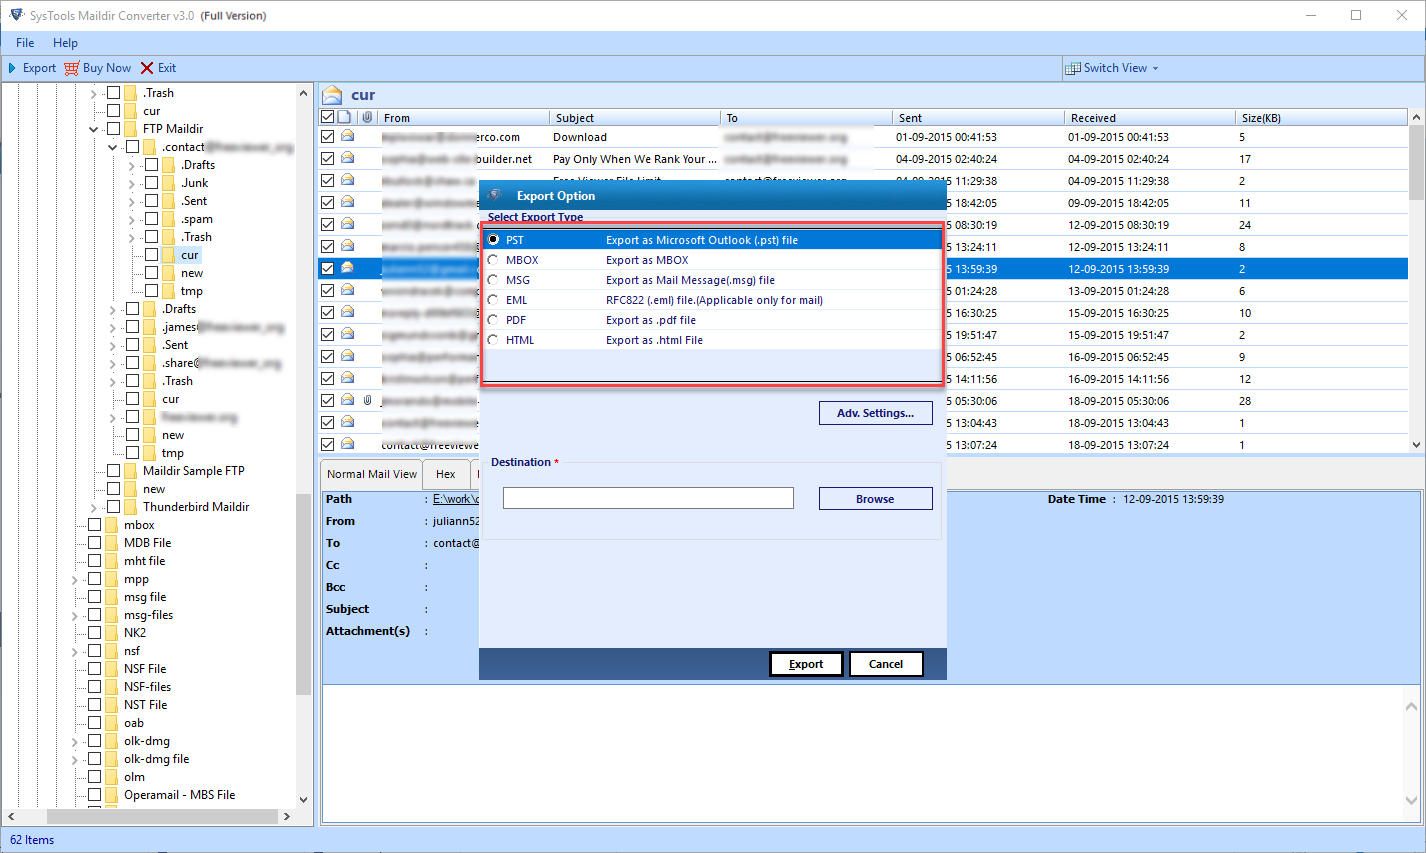 Maildir Converter, File Management Software Screenshot